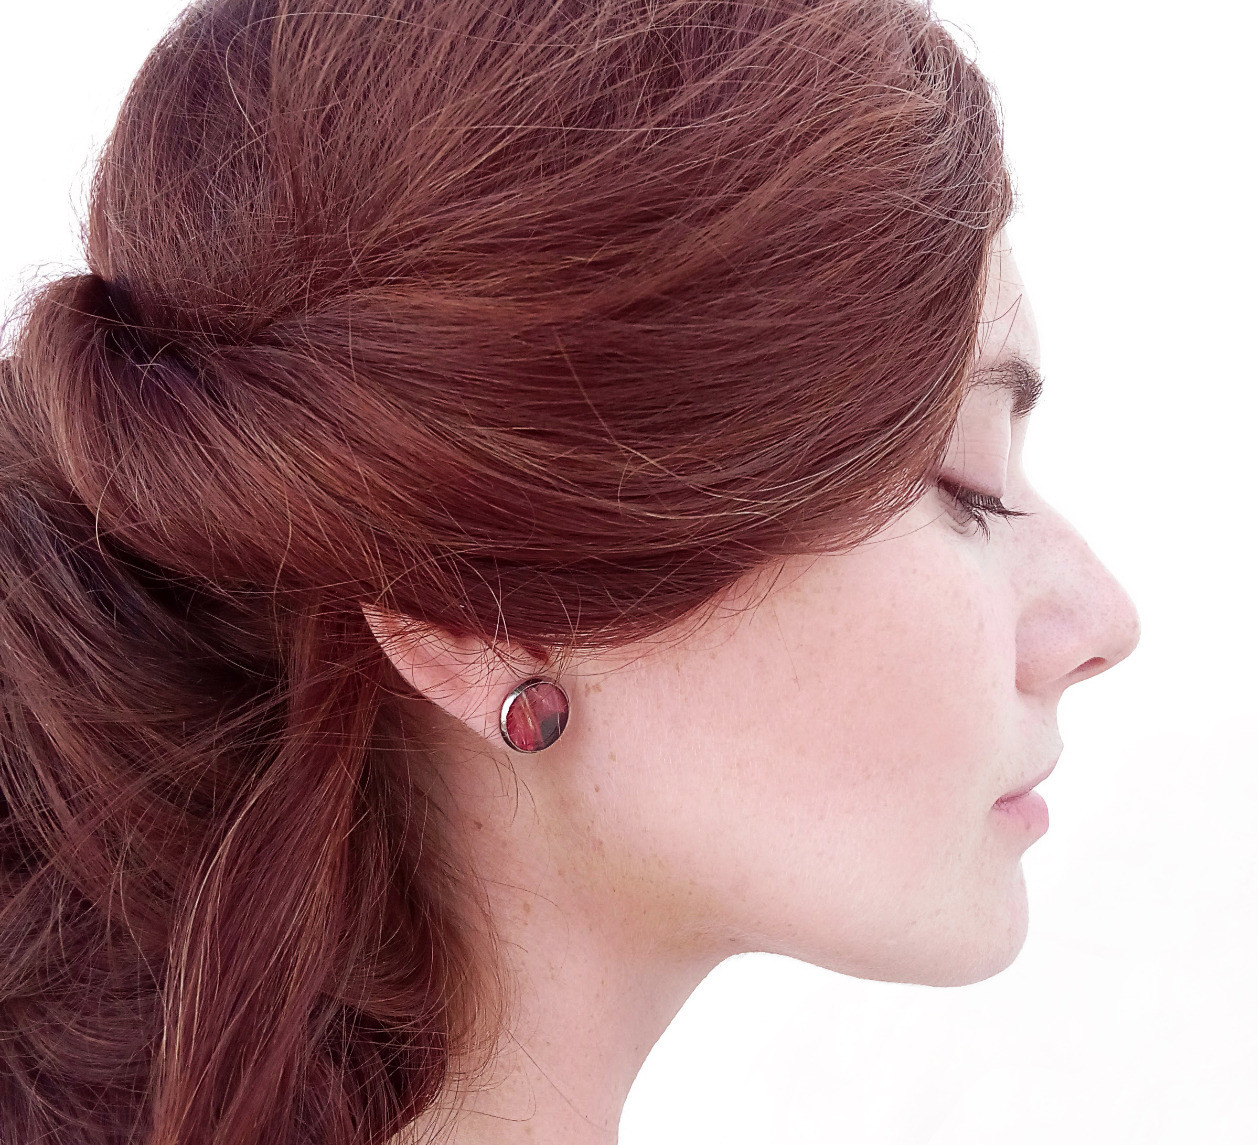 LIONFISH STUD EARRINGS RED